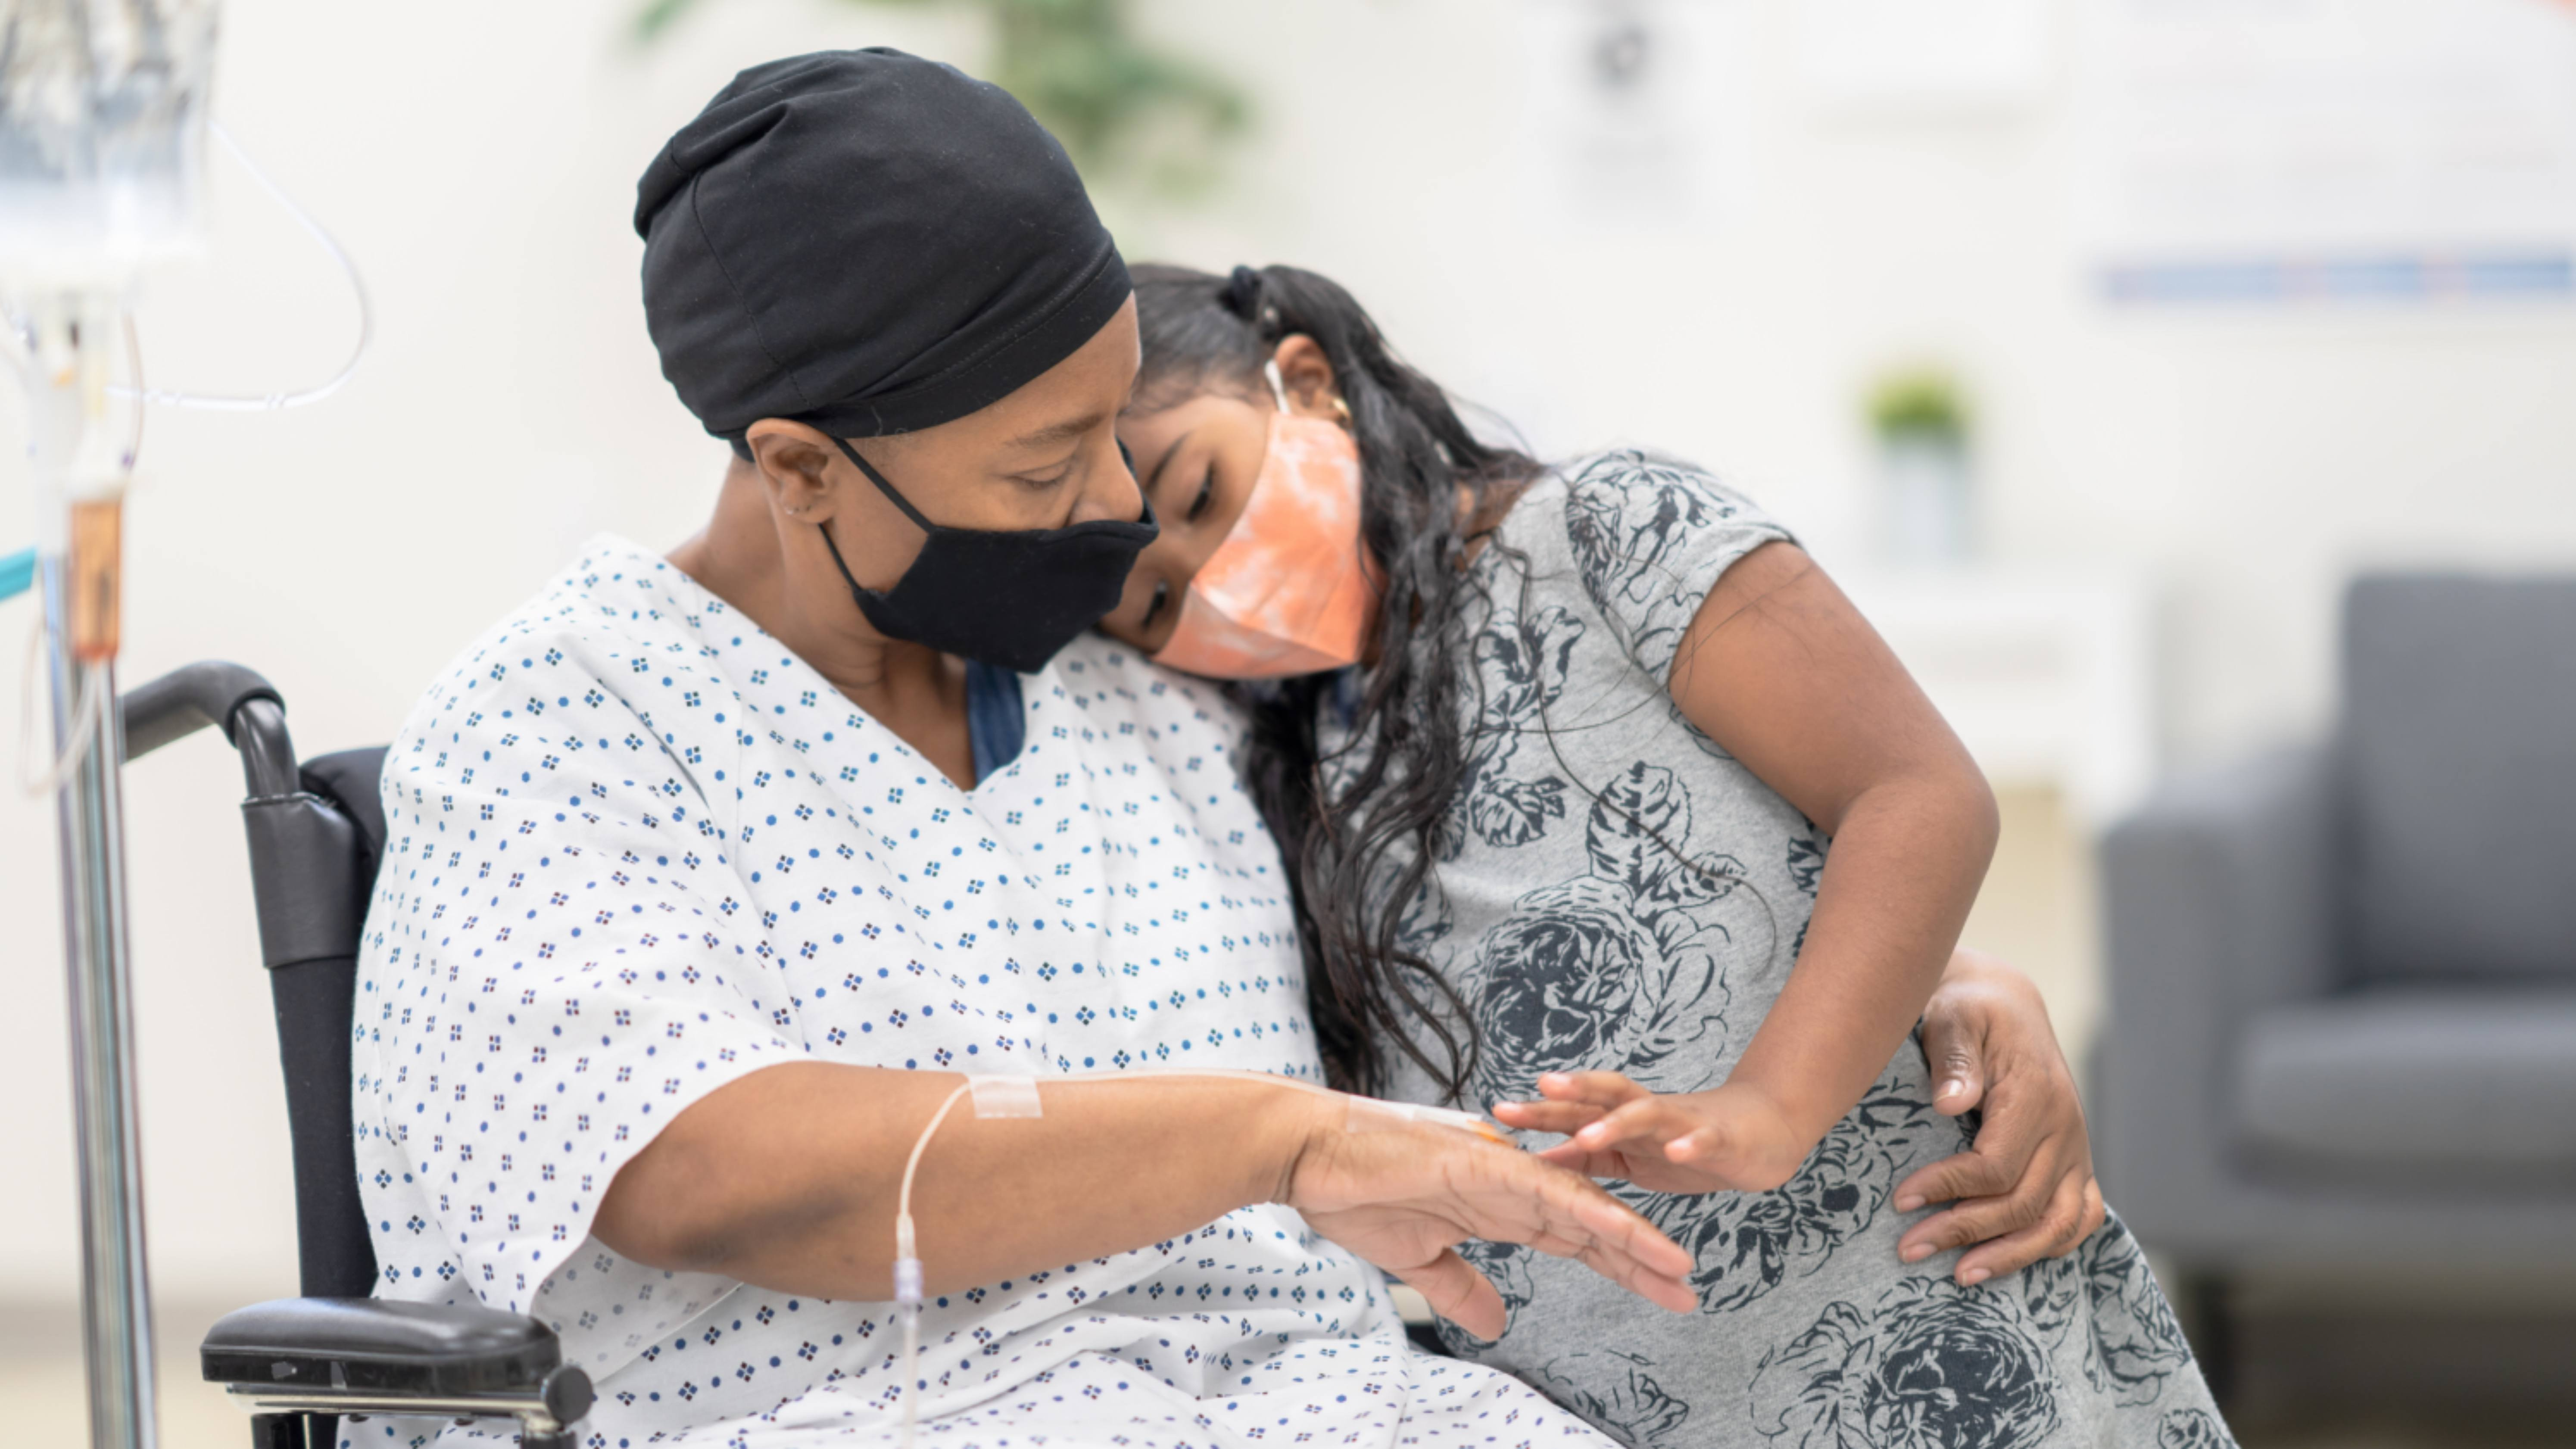 a Black woman with cancer in a wheelchair, with a chemotherapy IV, and little girl hugging her, both wearing masks